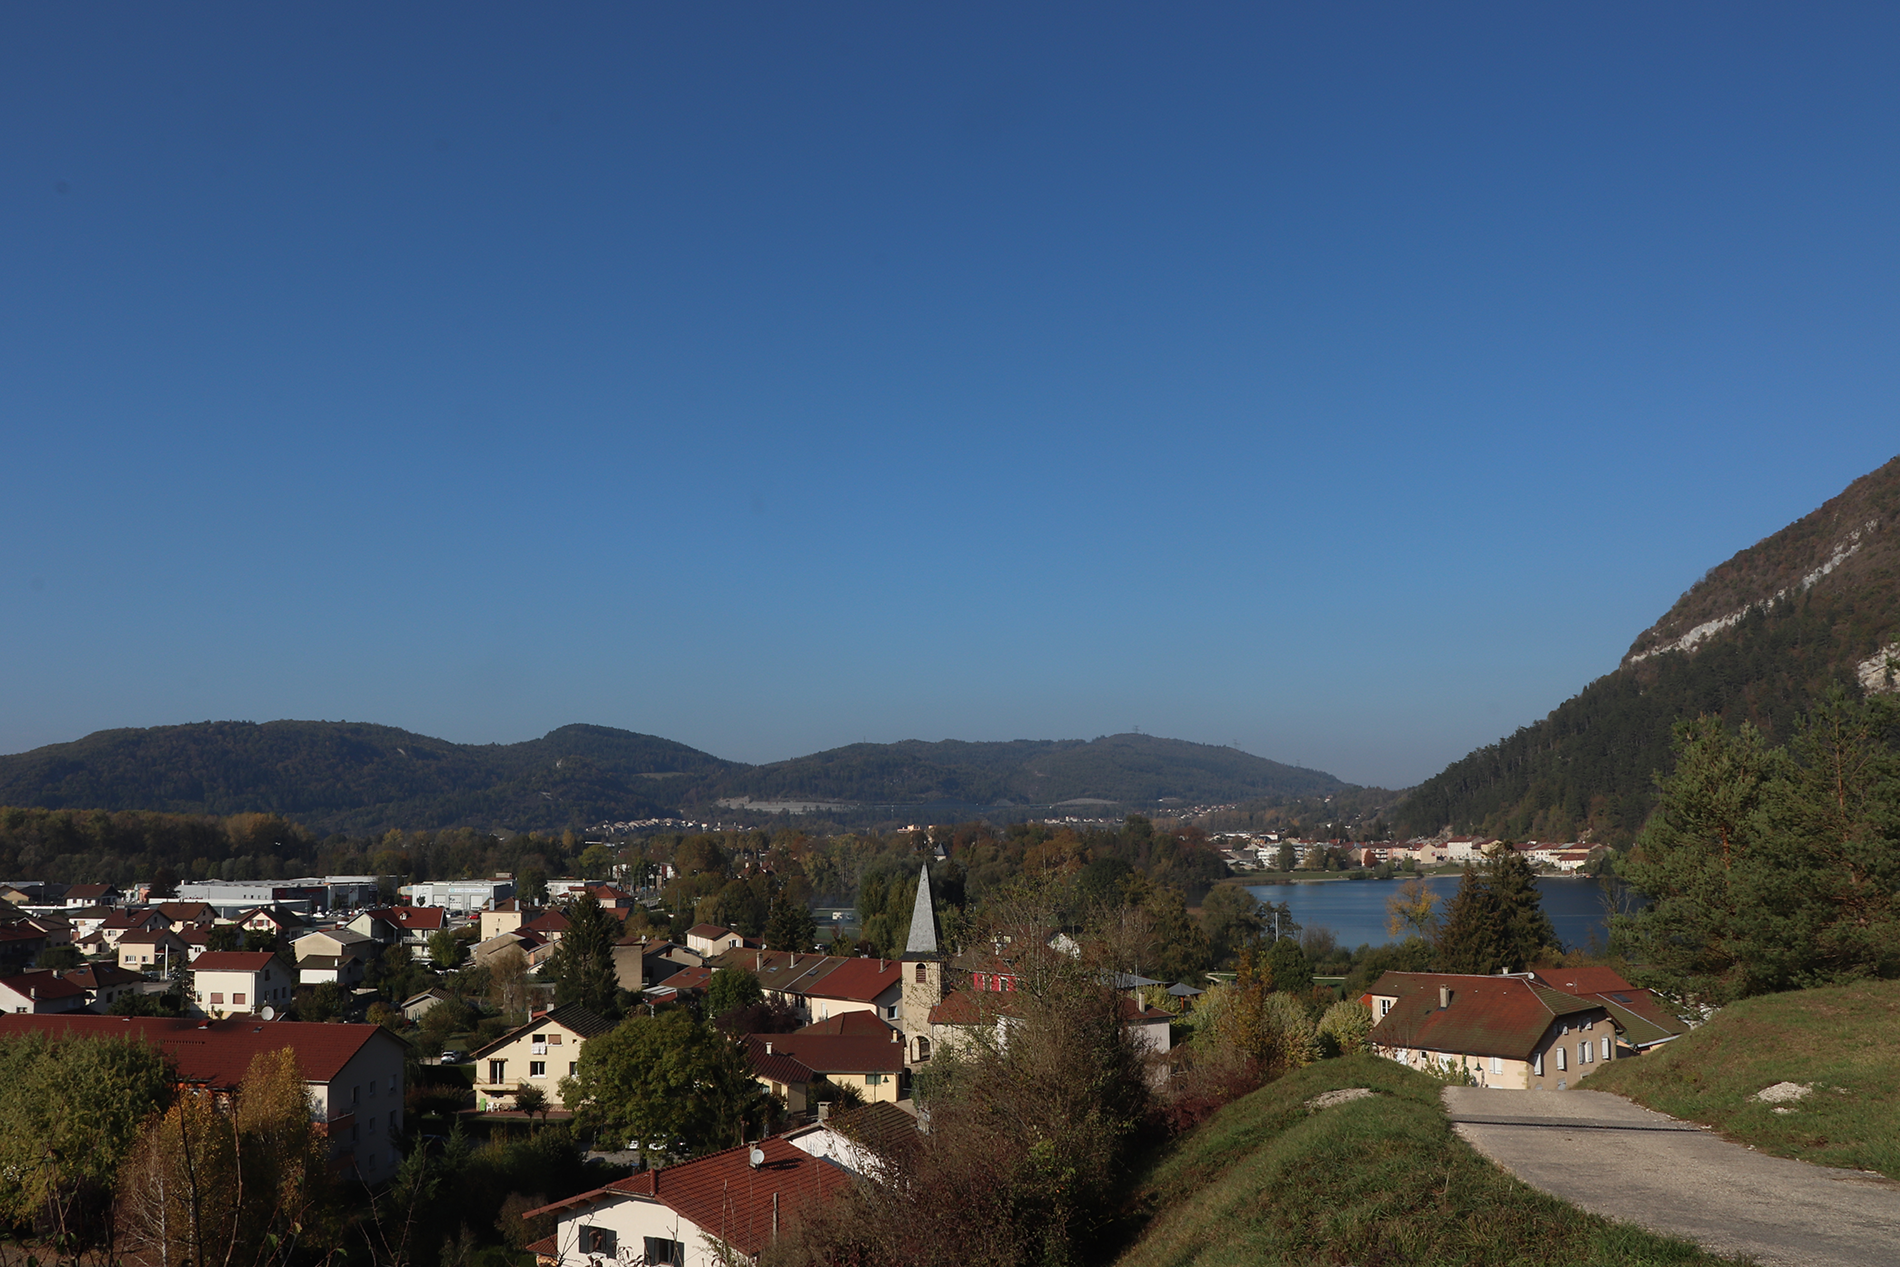 Pictures of Nantua, France